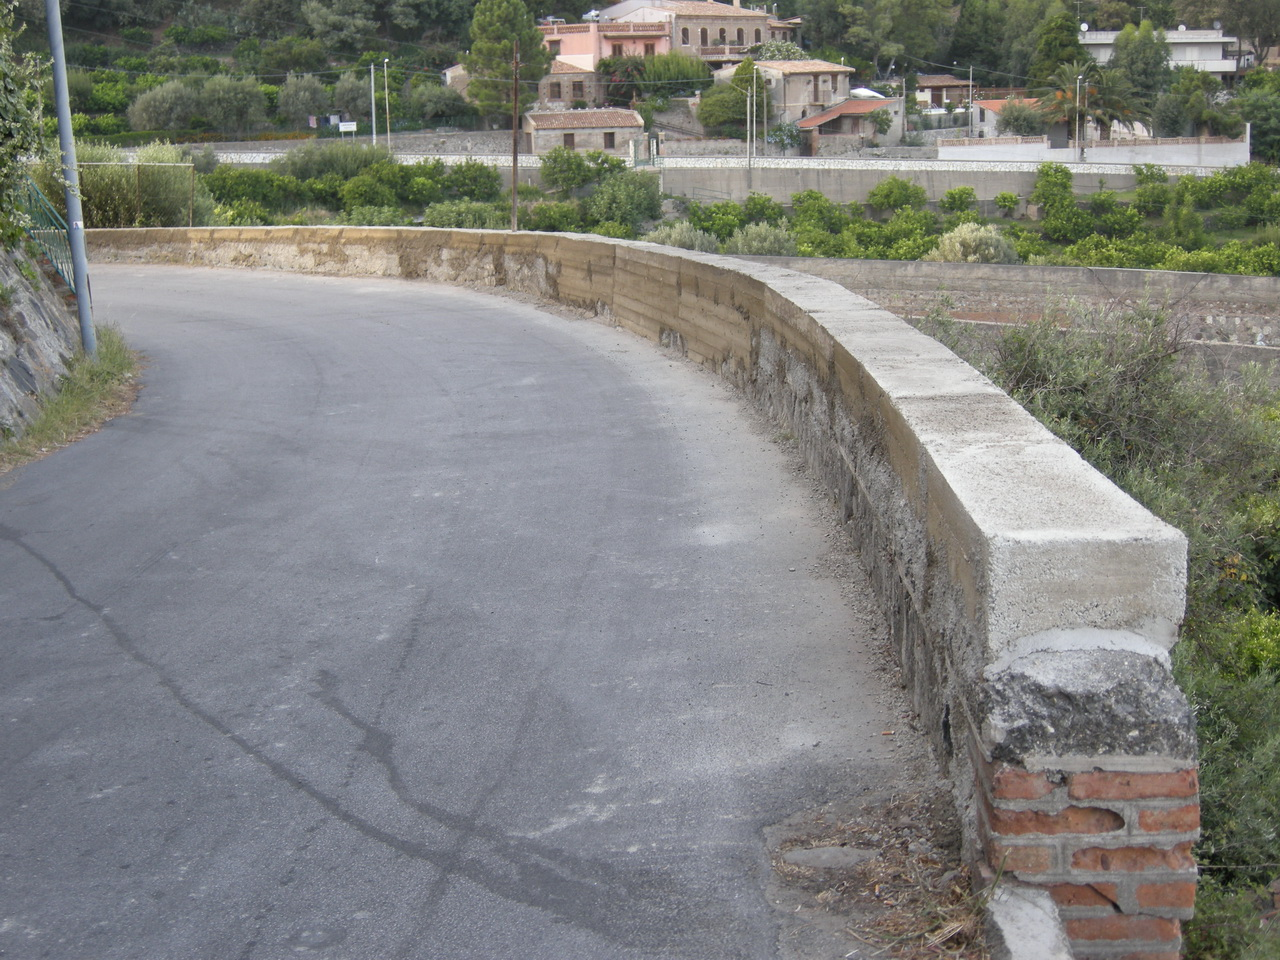 You are browsing images from the article: 25/07/2009 - Ricostruito il muro crollato da anni vicino al Ponte Larderia